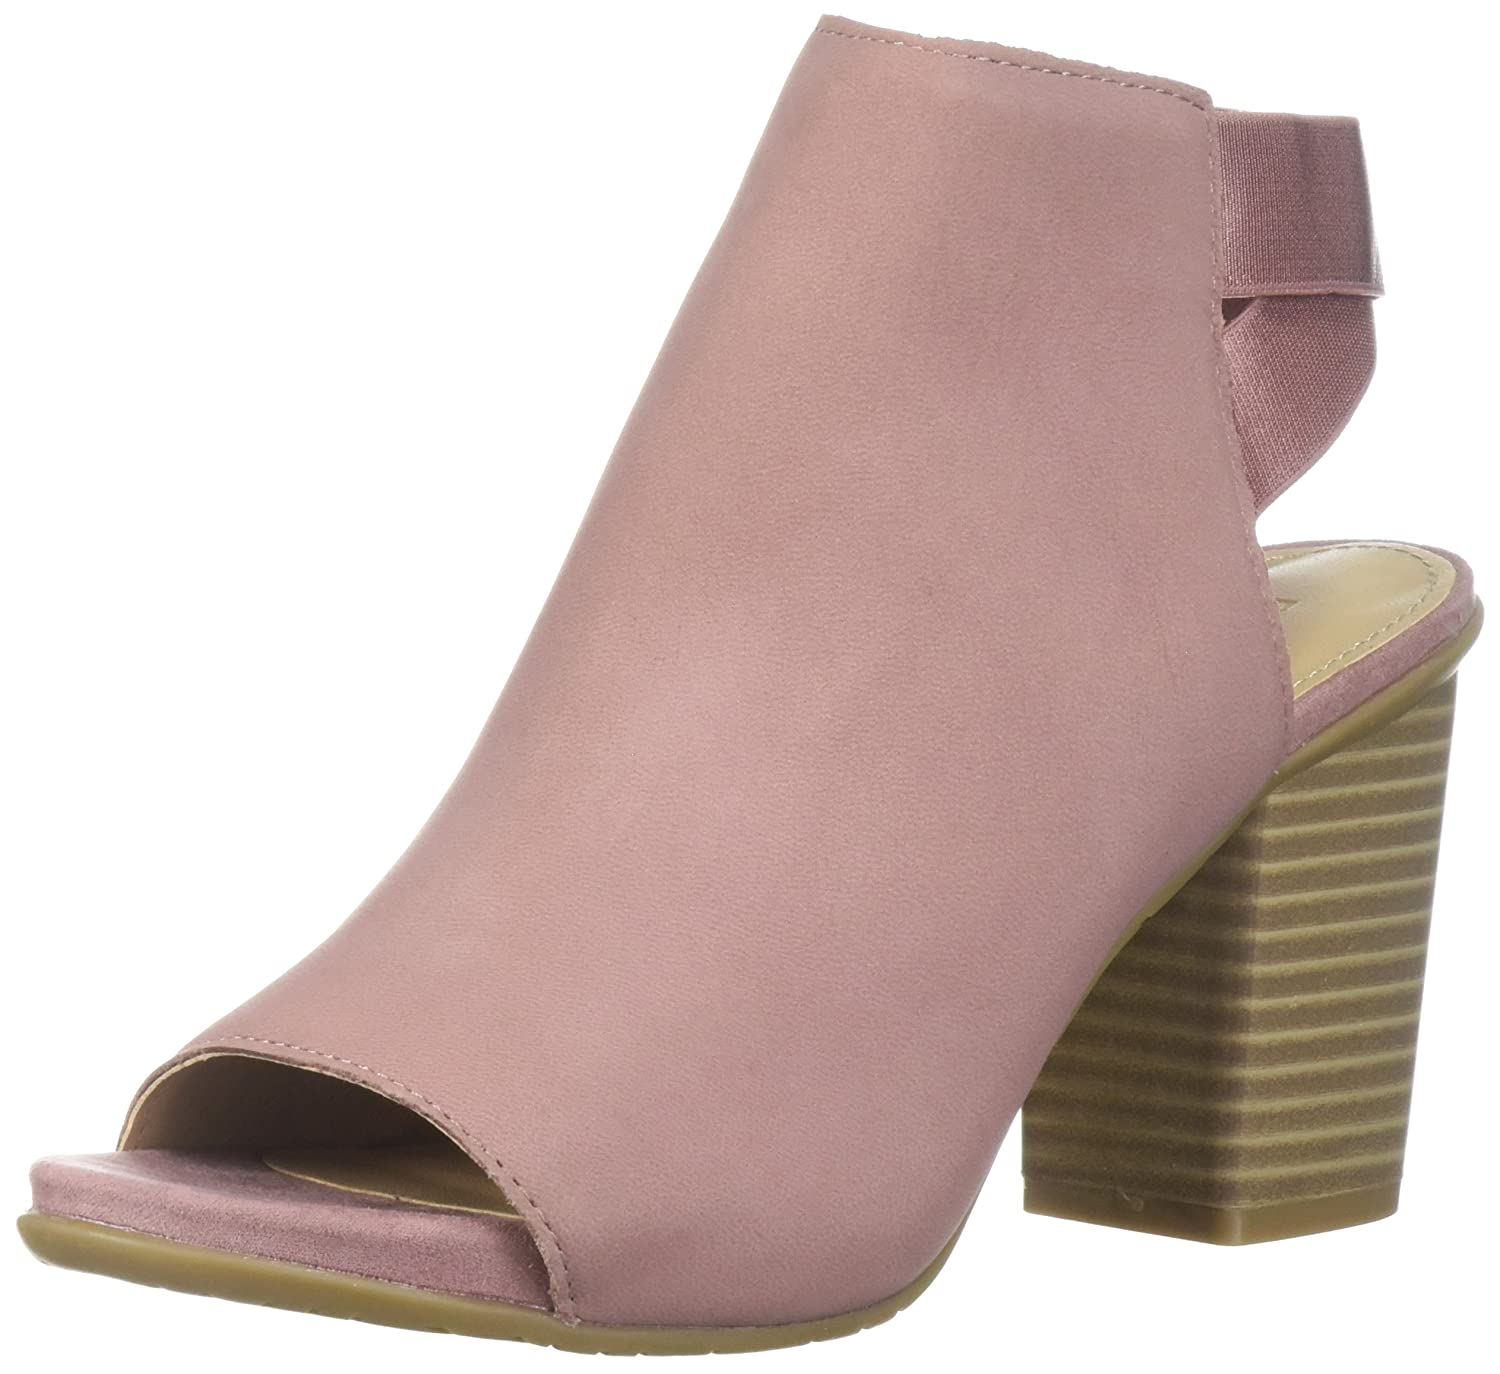 Kenneth Cole REACTION Women's Fridah Fly Toe and Open Heel Bootie Ankle Boot B076FJ6G8P 8.5 B(M) US|Guava